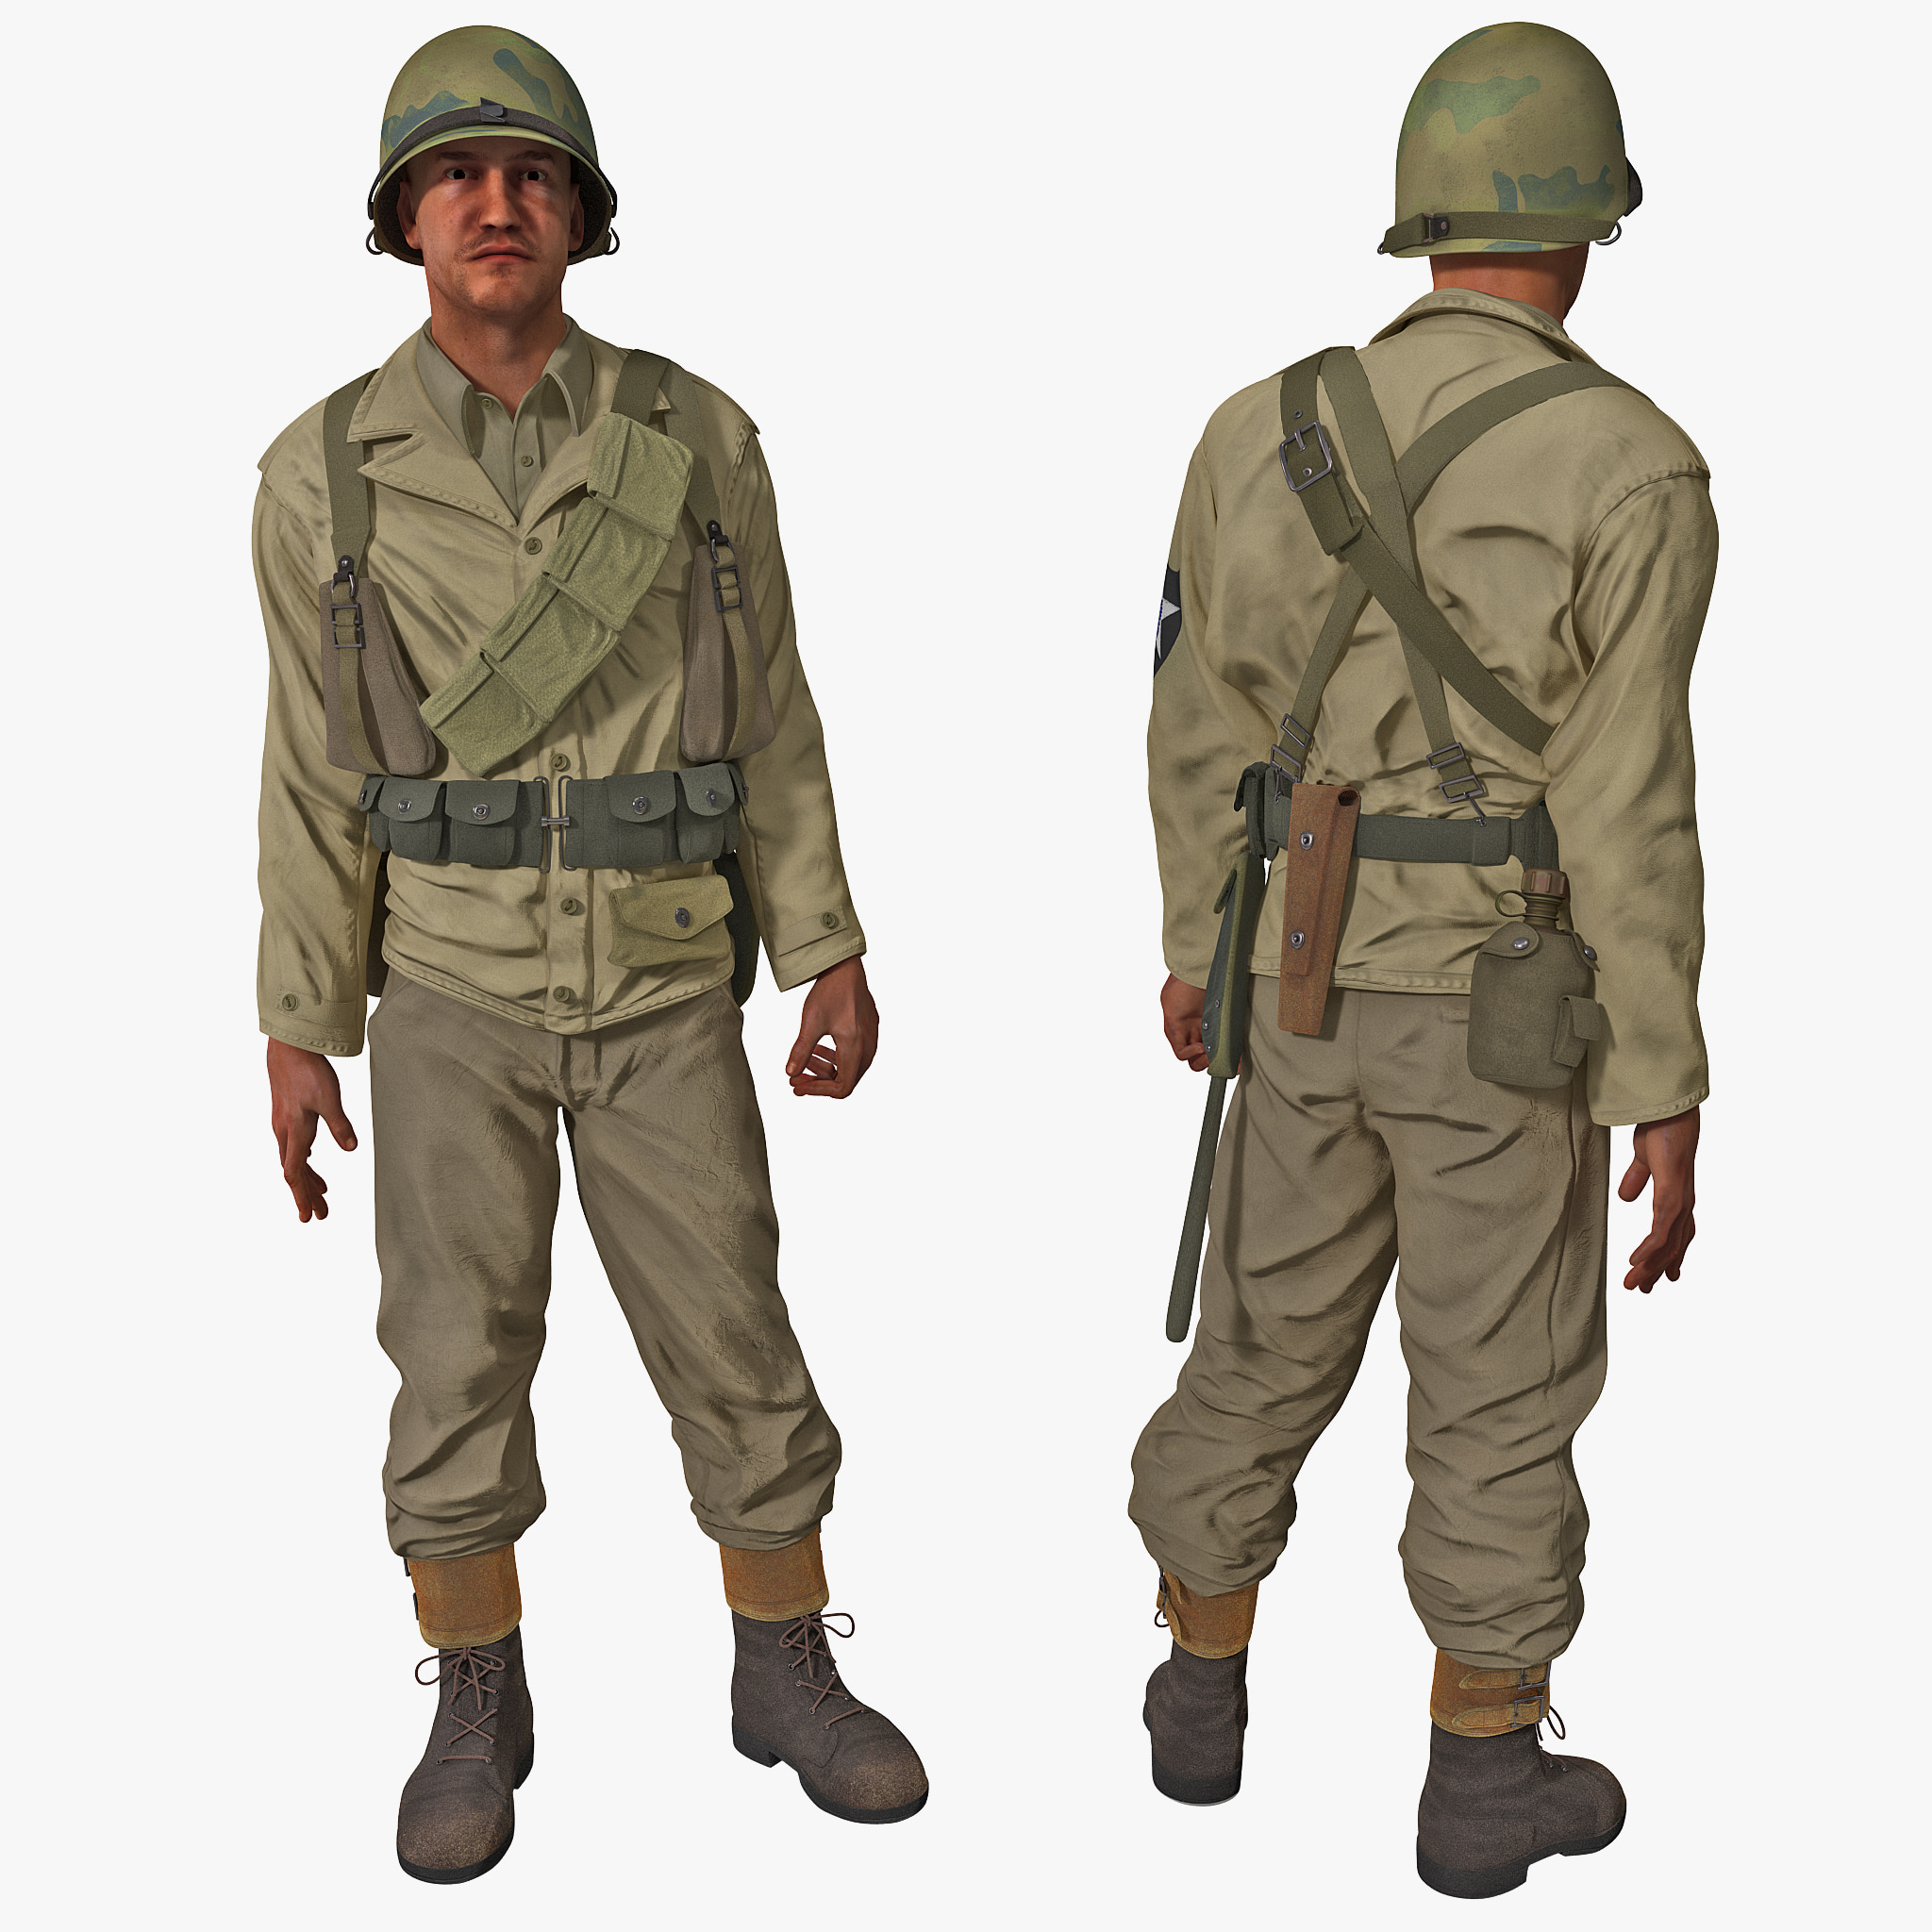 American WWII Infantry Soldier Rigged_1.jpg